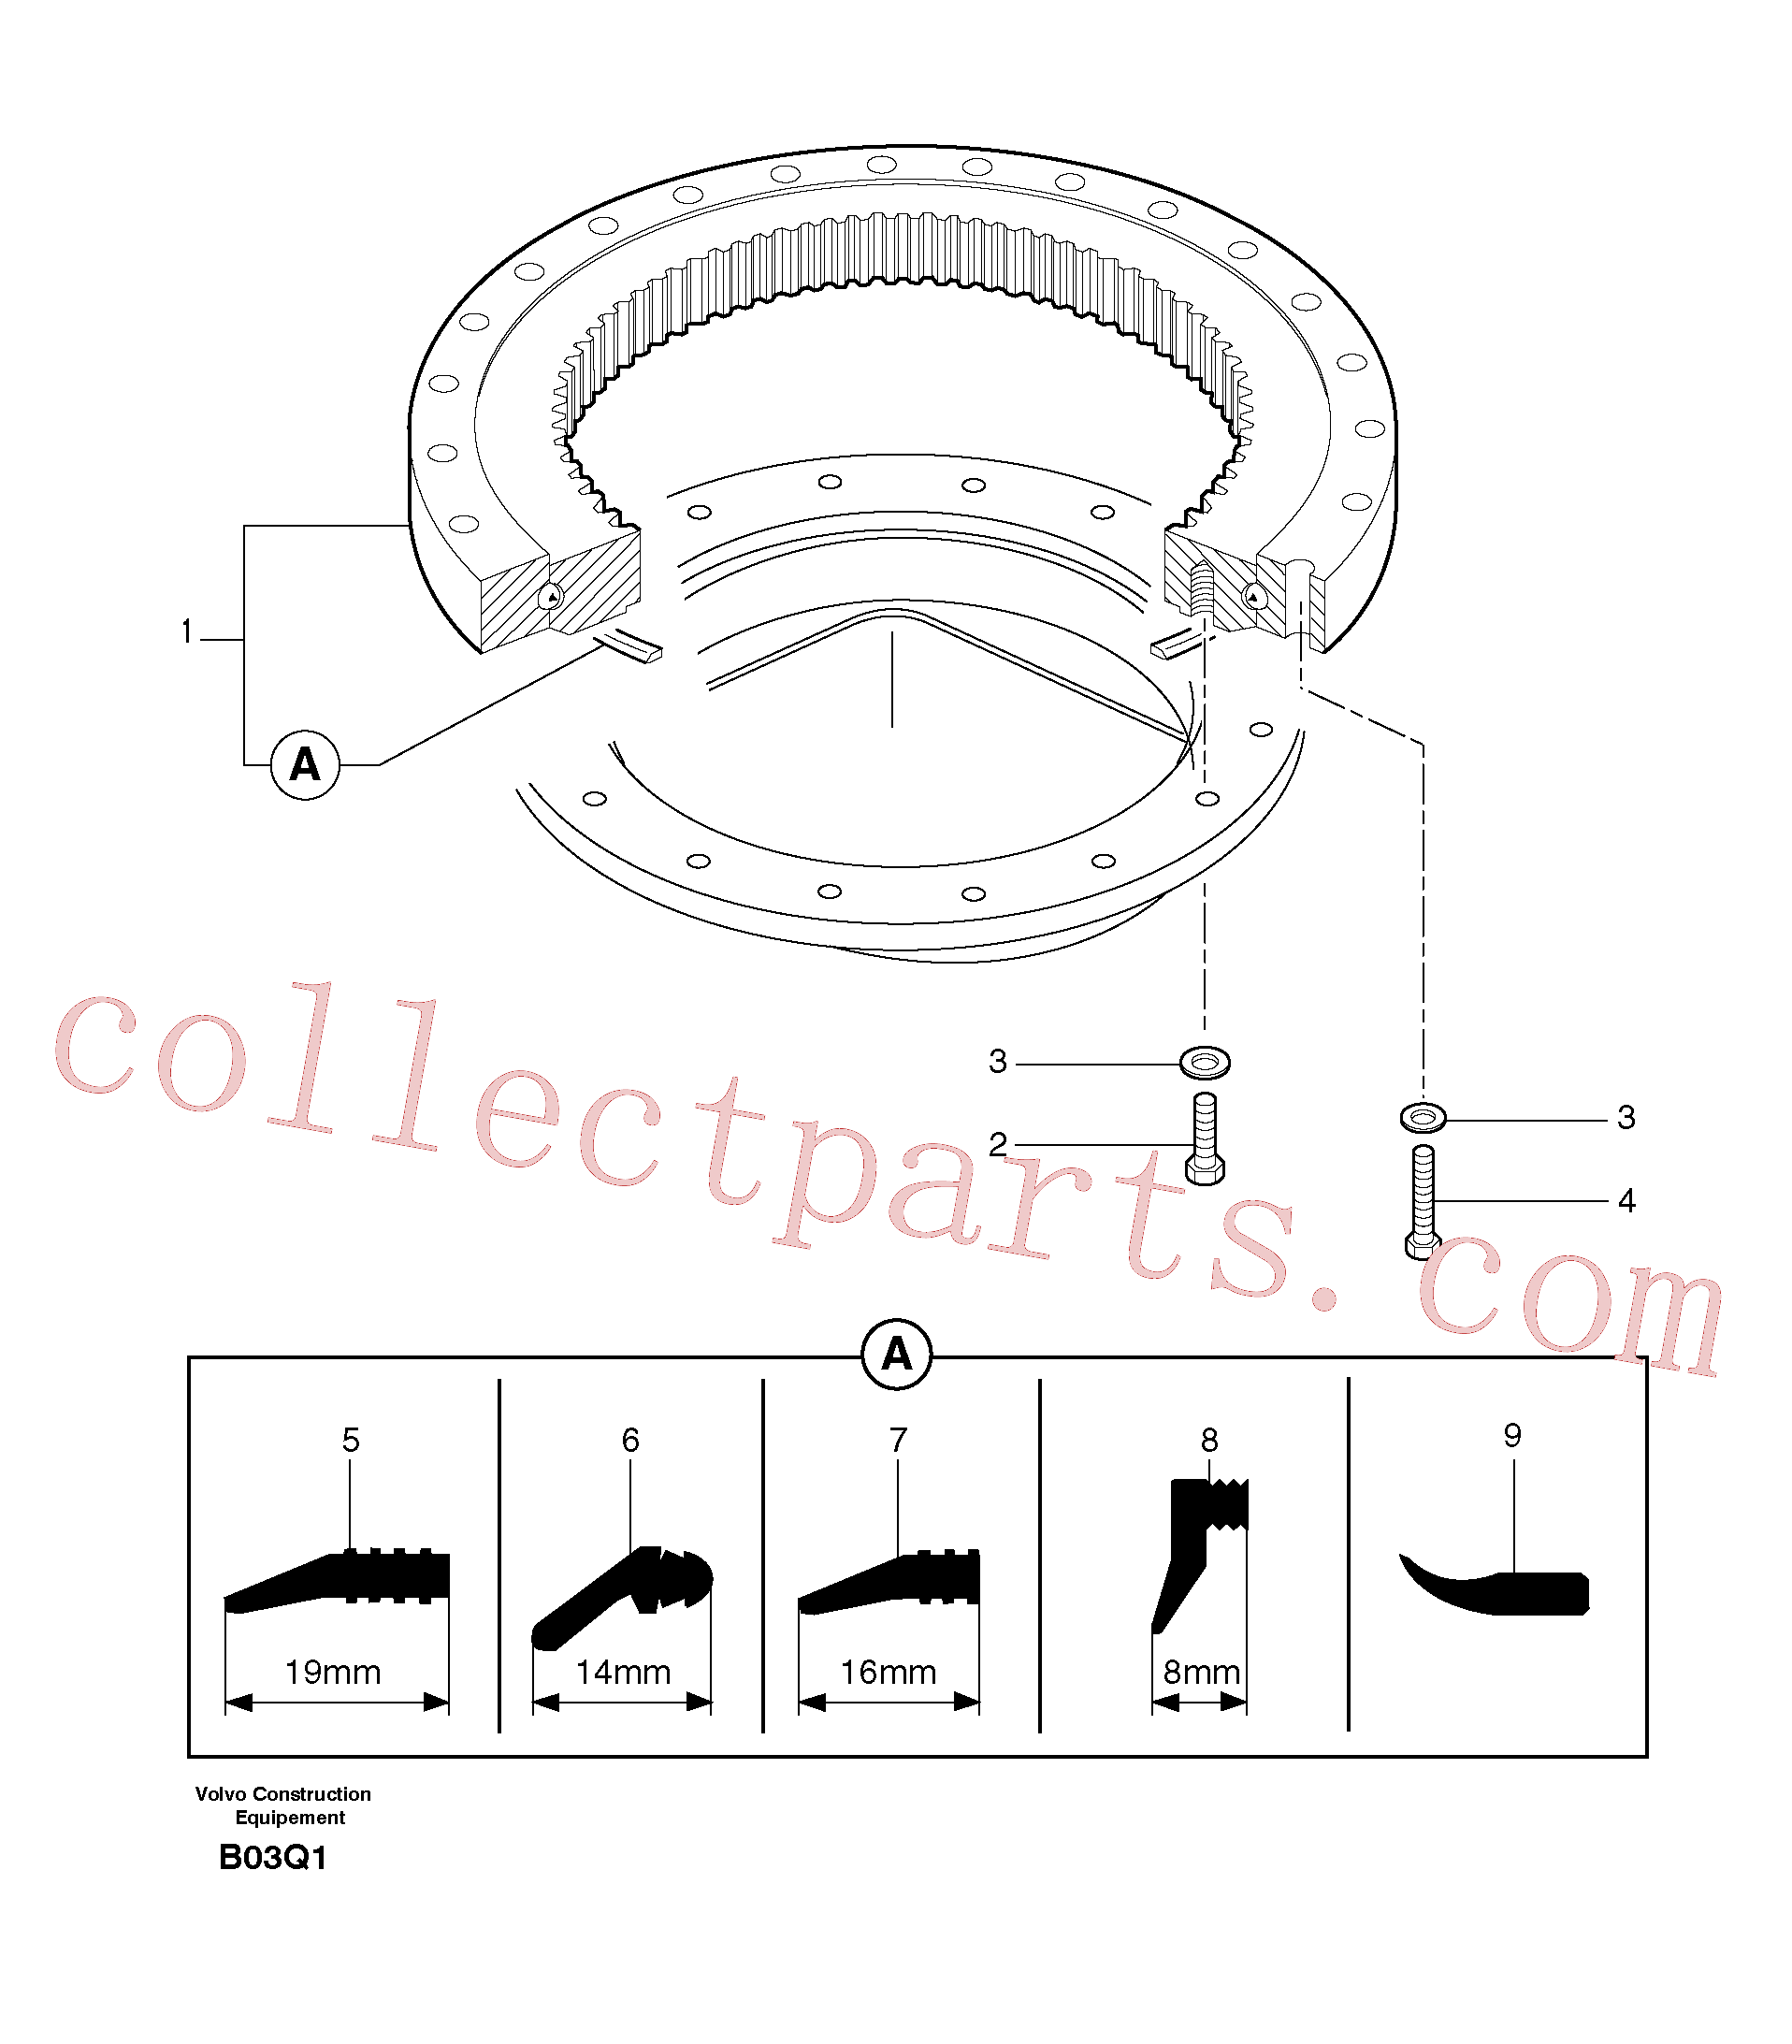 PJ7411004 for Volvo Slewing ring(B03Q1 assembly)